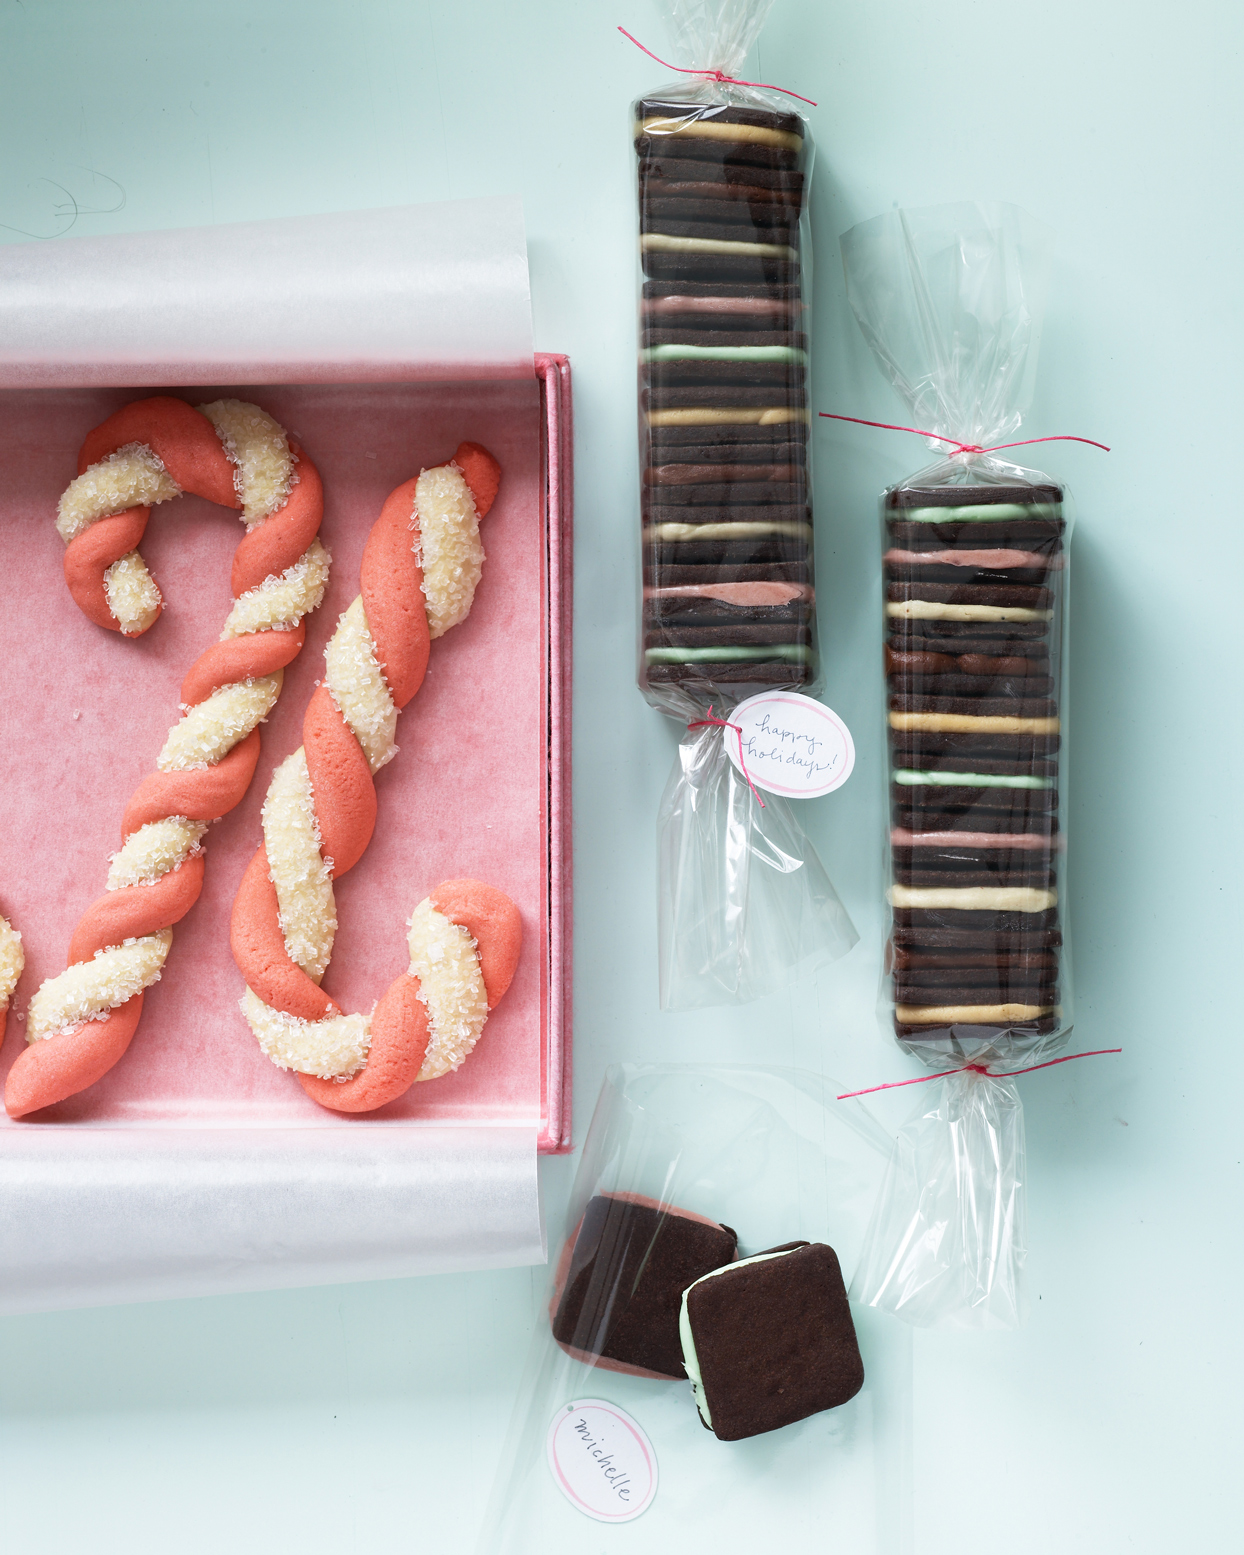 candy cane shaped cookies